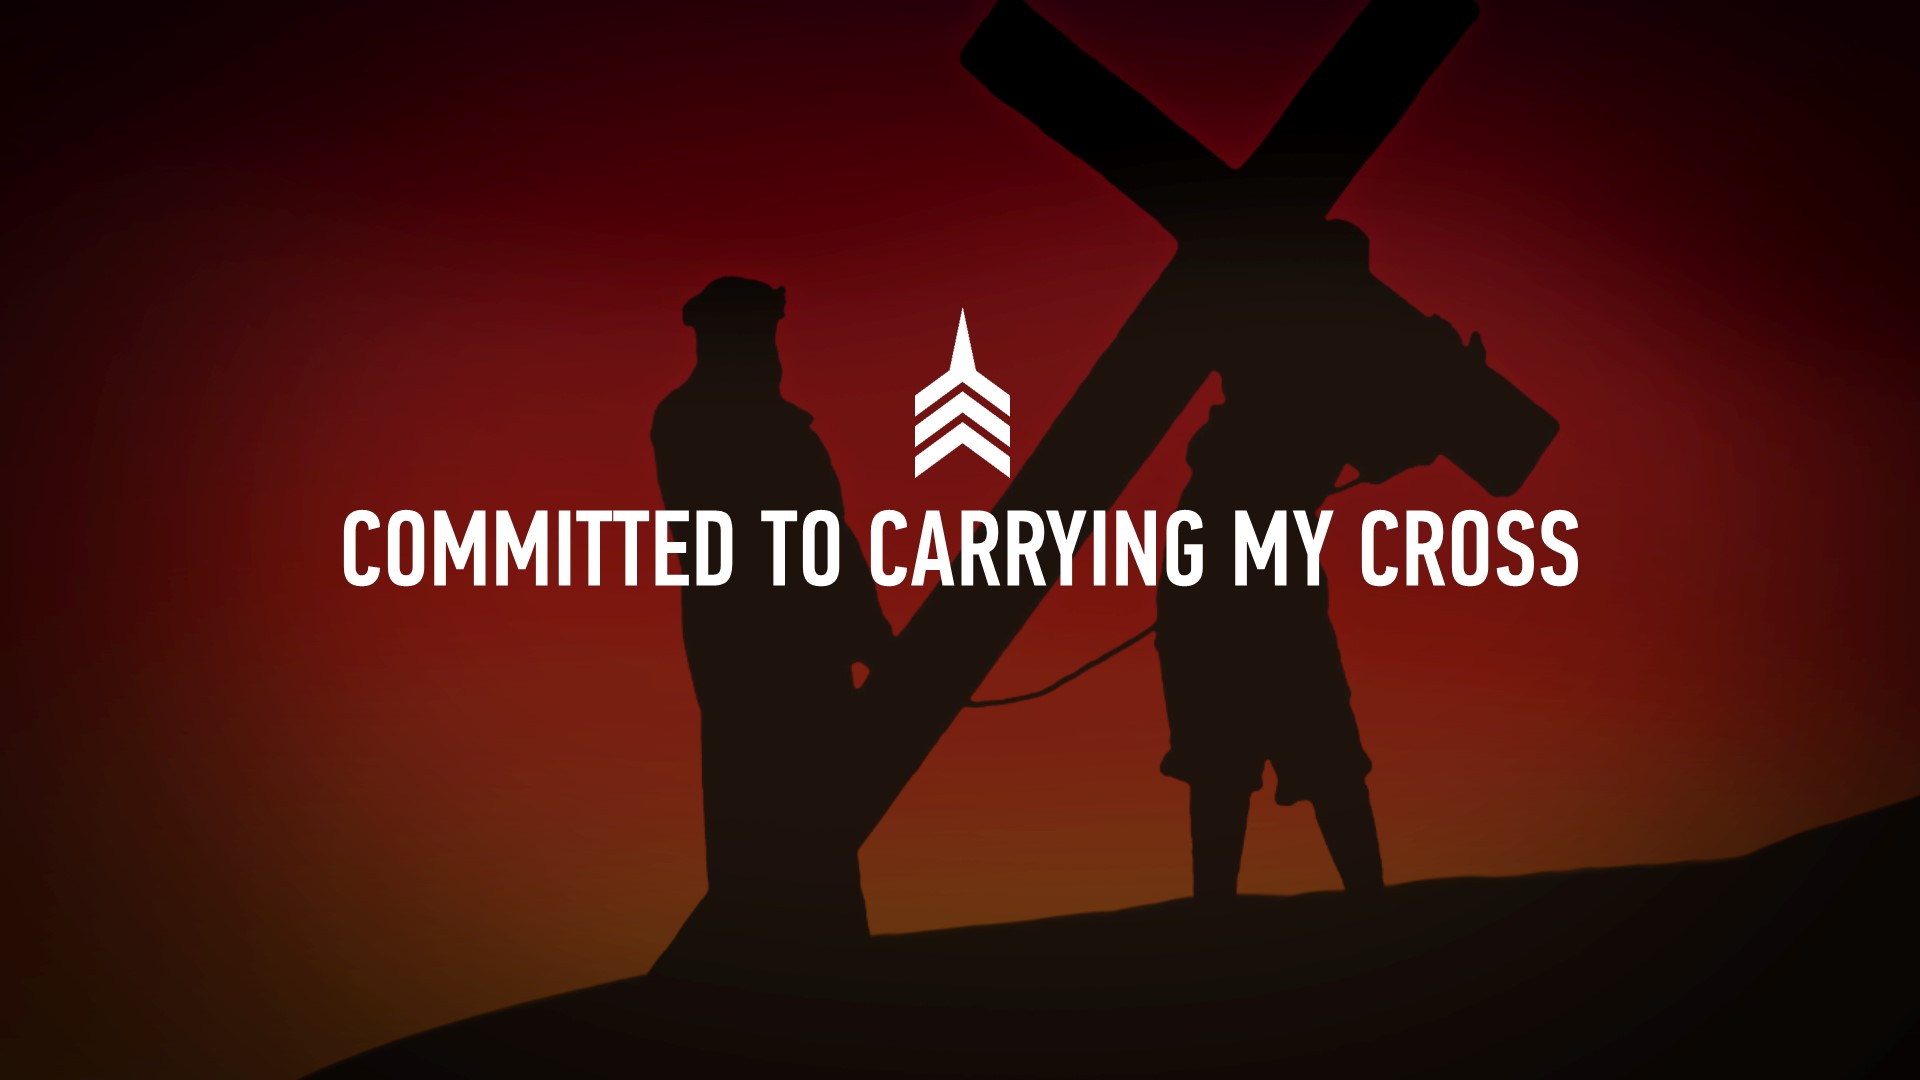 20190407 COMMITTED TO CARRYING MY CROSS.JPG